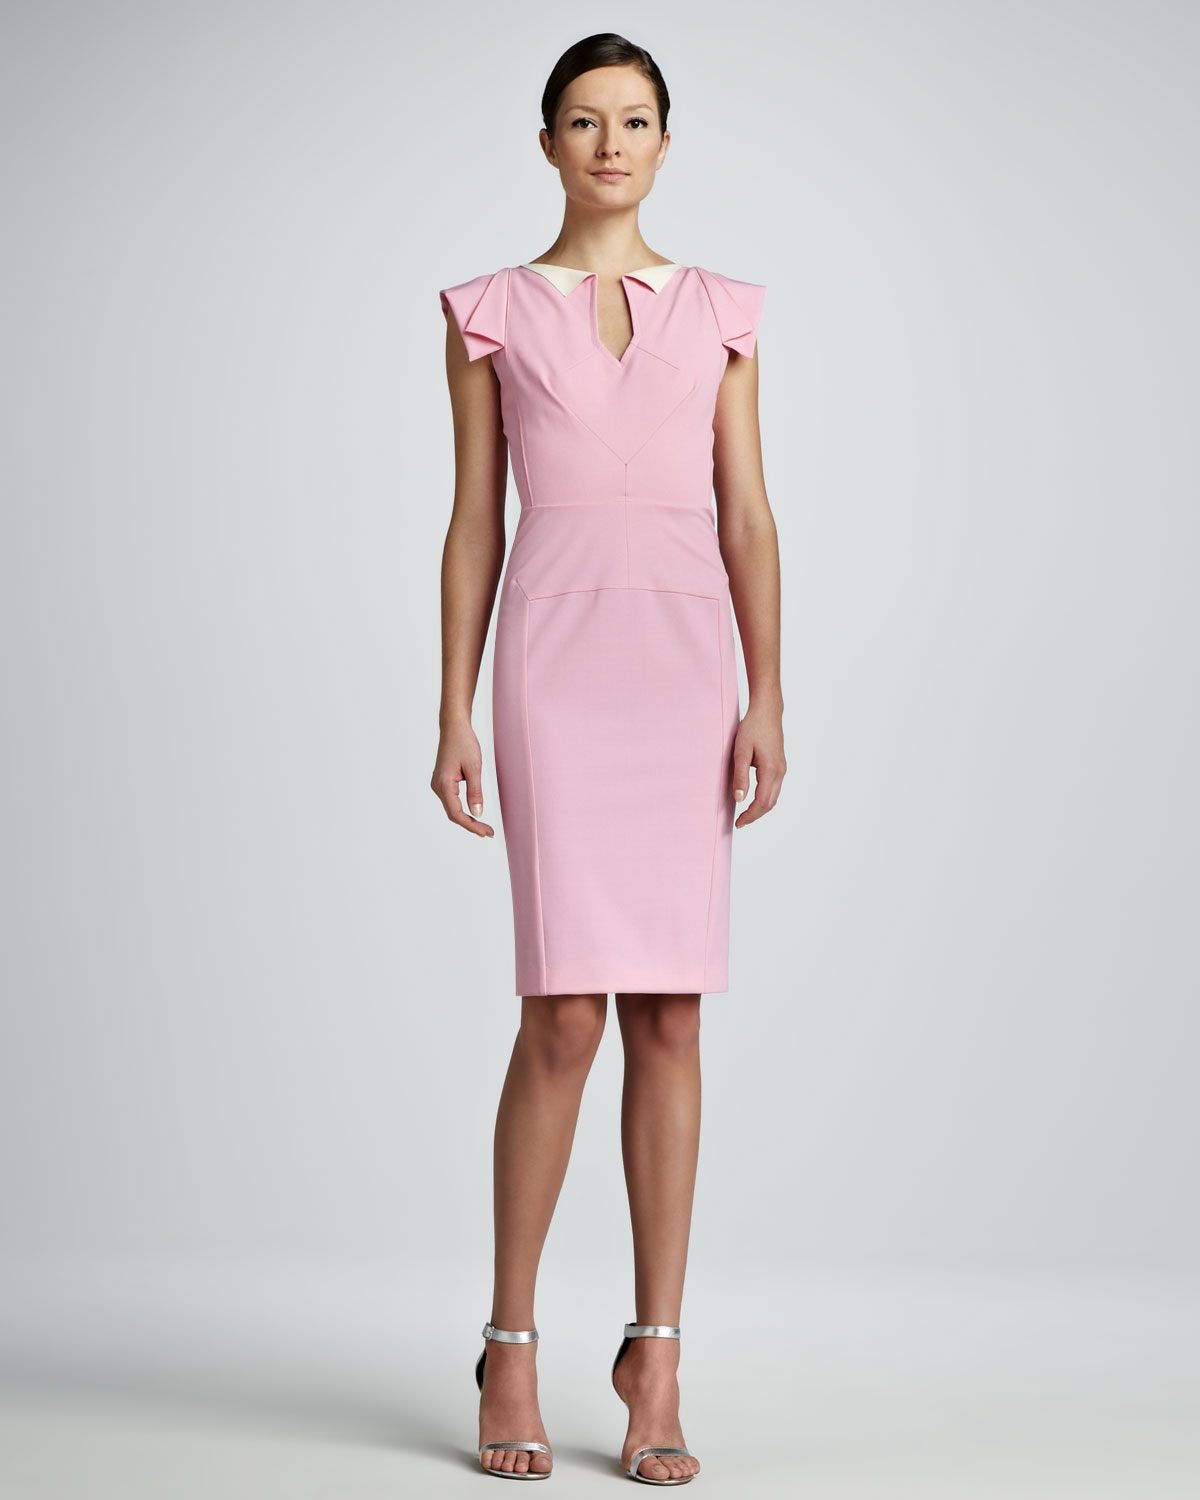 Lyst Roland Mouret Cap Sleeve Sheath Dress Light Pink In